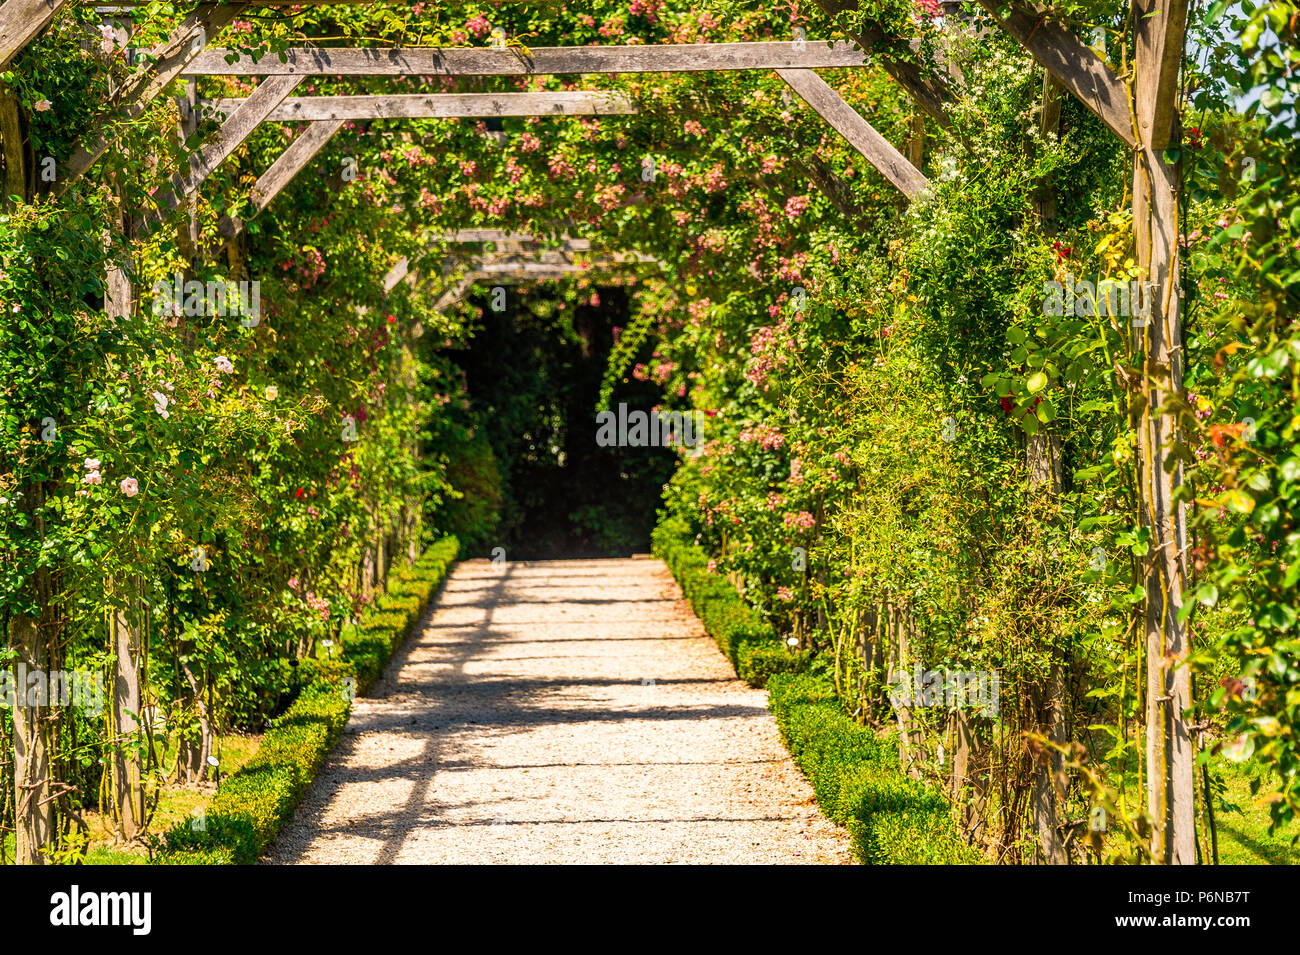 The spectacular Rose Garden within Parc de Bagatelle in Paris, France Stock Photo